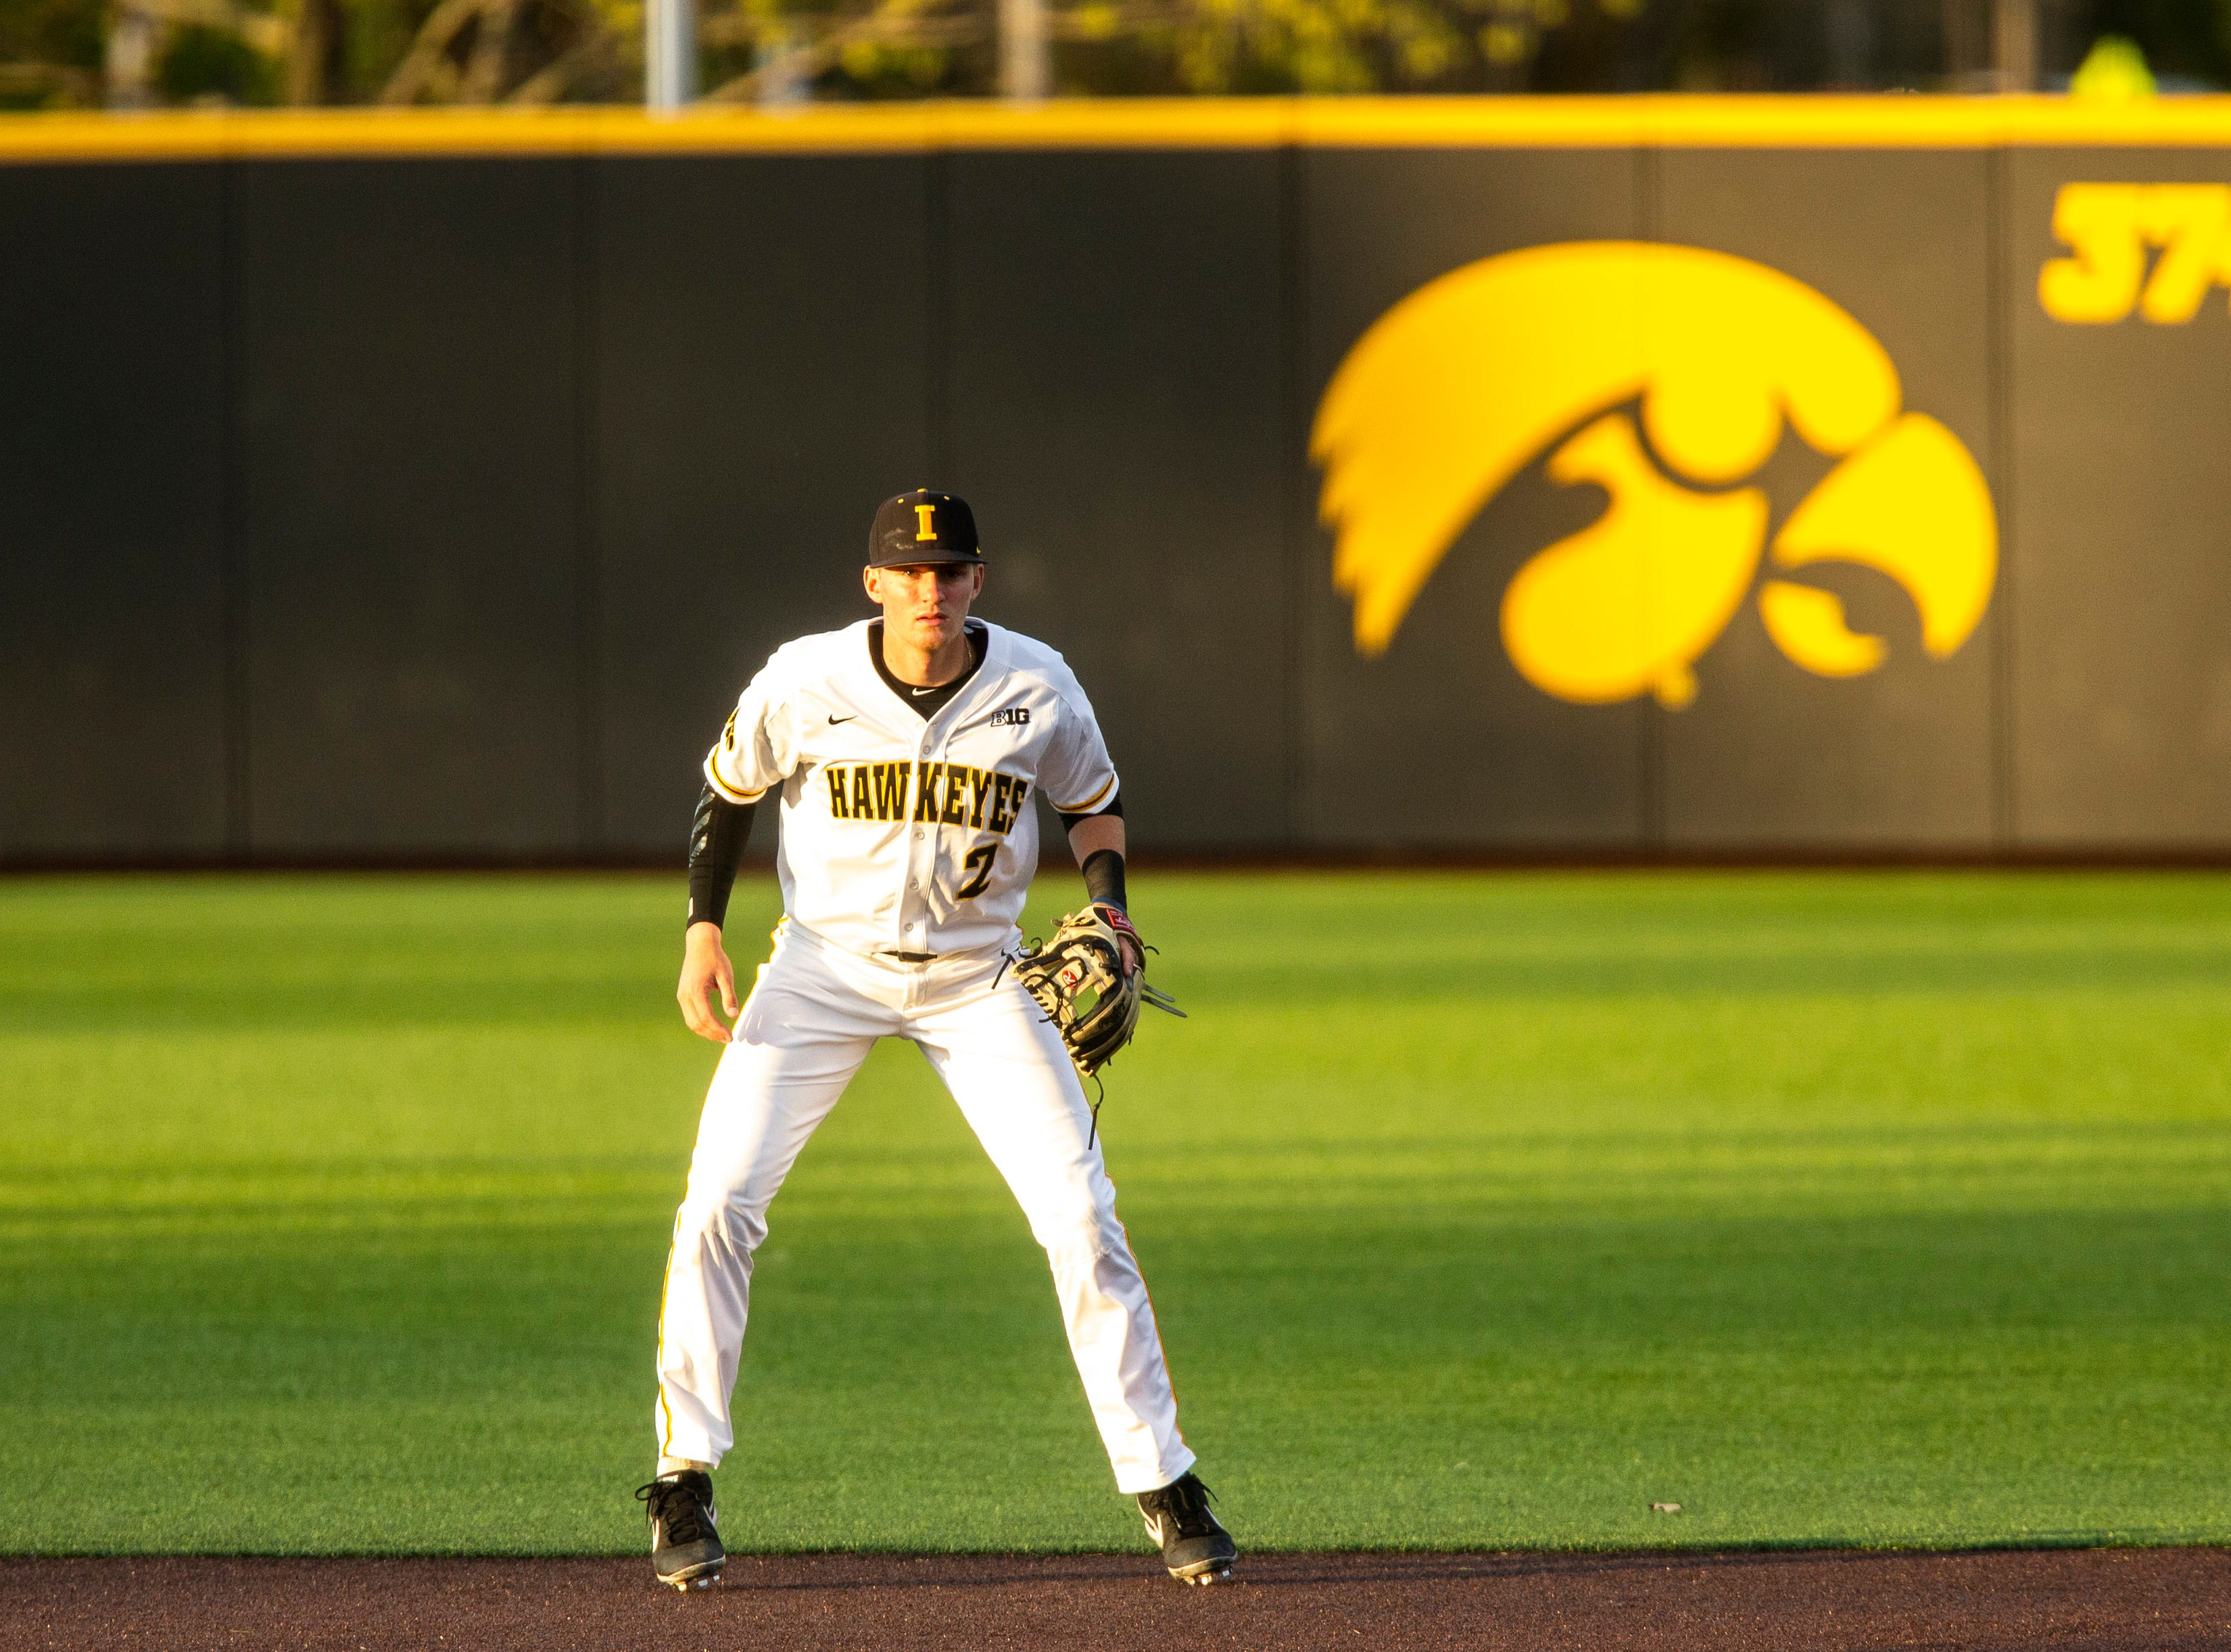 Iowa infielder Brendan Sher (2) is pictured during NCAA non conference baseball game, Friday, May 3, 2019, at Duane Banks Field in Iowa City, Iowa.